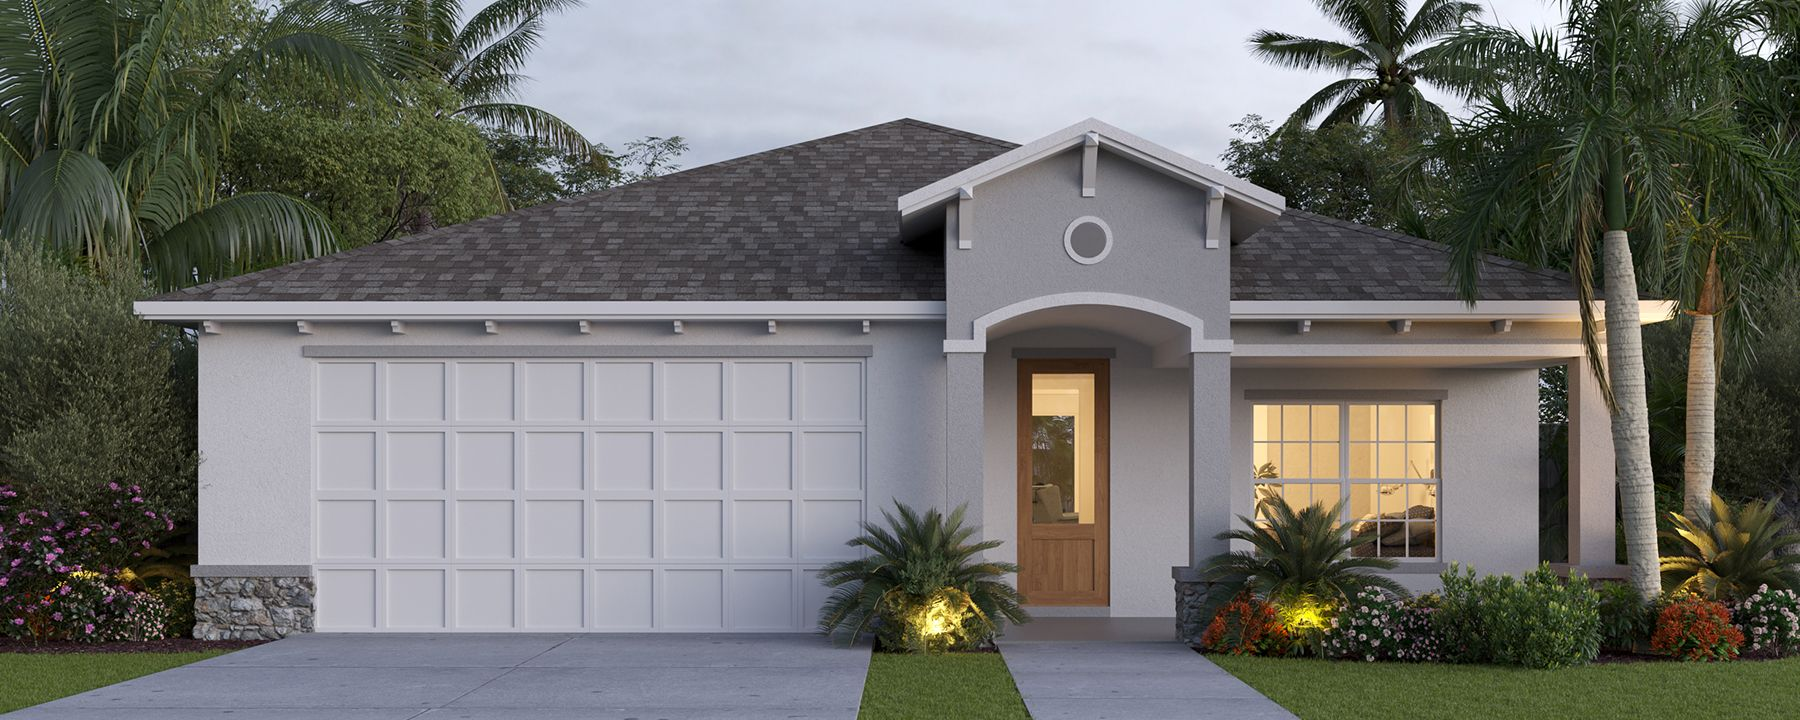 Exterior featured in the Villa Pisani (2-car) By Palladio Homes in Ocala, FL